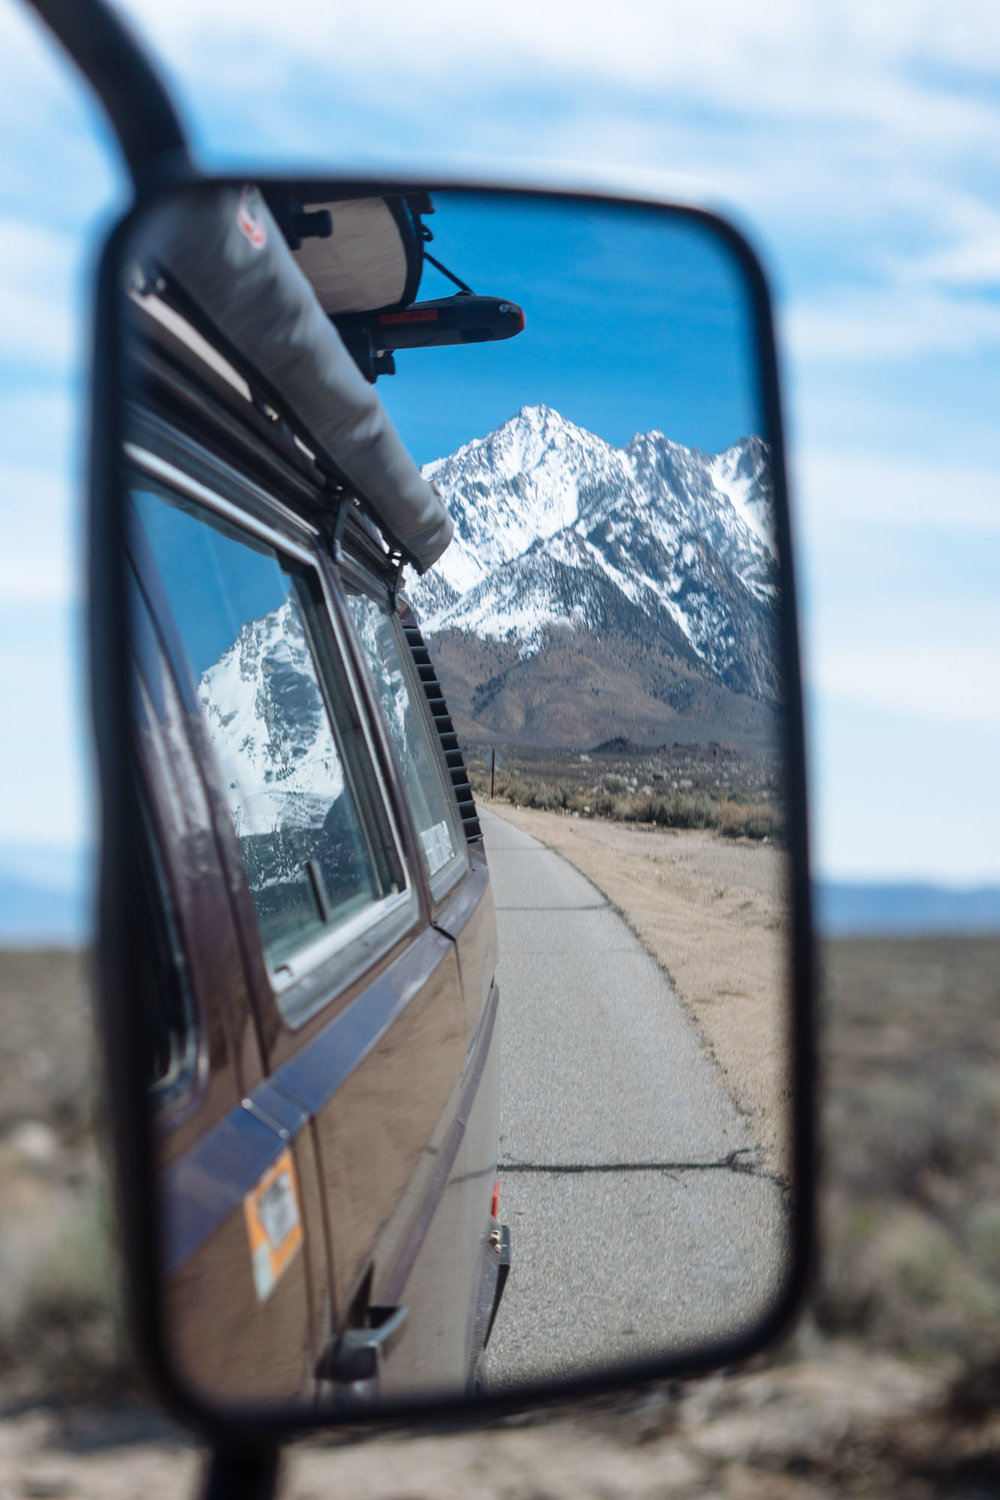 Sierras in the side view mirror